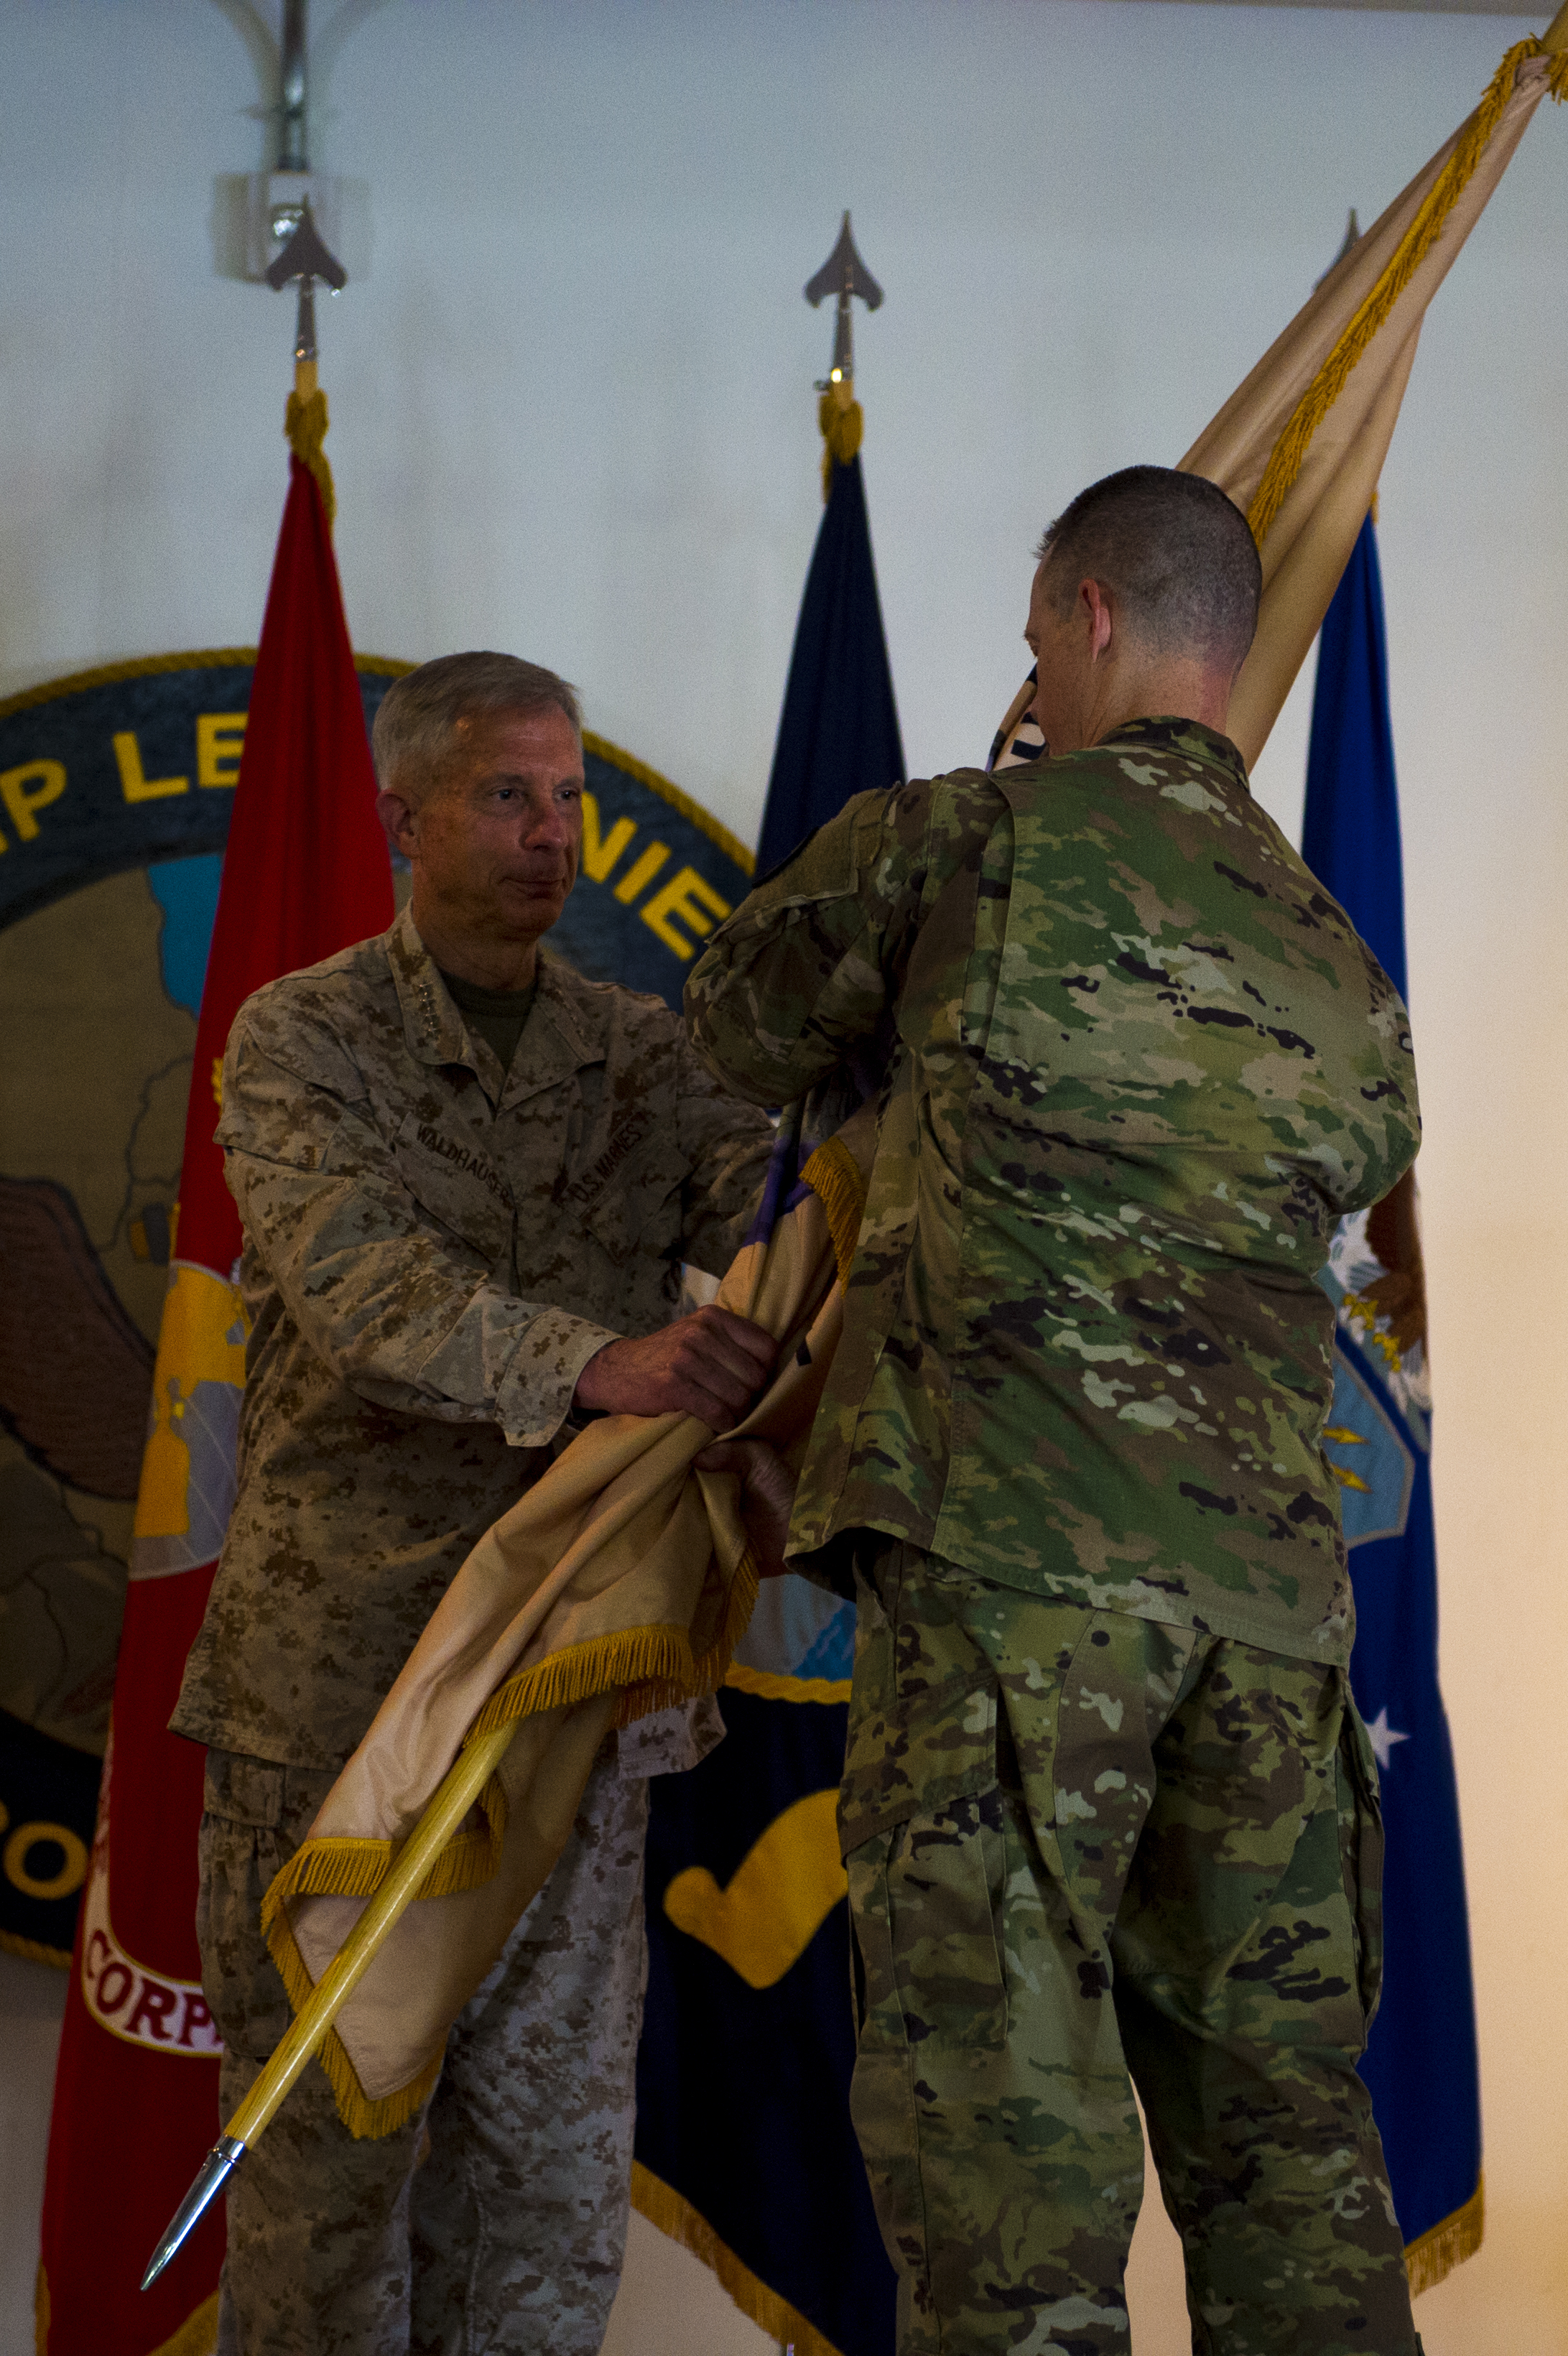 U.S. Marine Corps Gen. Thomas Waldhauser, Commander of United States Africa Command, passes the Combined Joint Task Force Horn of Africa flag, the symbol of command, to U.S. Army Brig. Gen. William Zana, the new CJTF-HOA acting commanding general, during the transfer of authority ceremony for CJTF-HOA on Camp Lemonnier, May 1, 2018.  (U.S. Air Force photo by Senior Airman Scott Jackson)